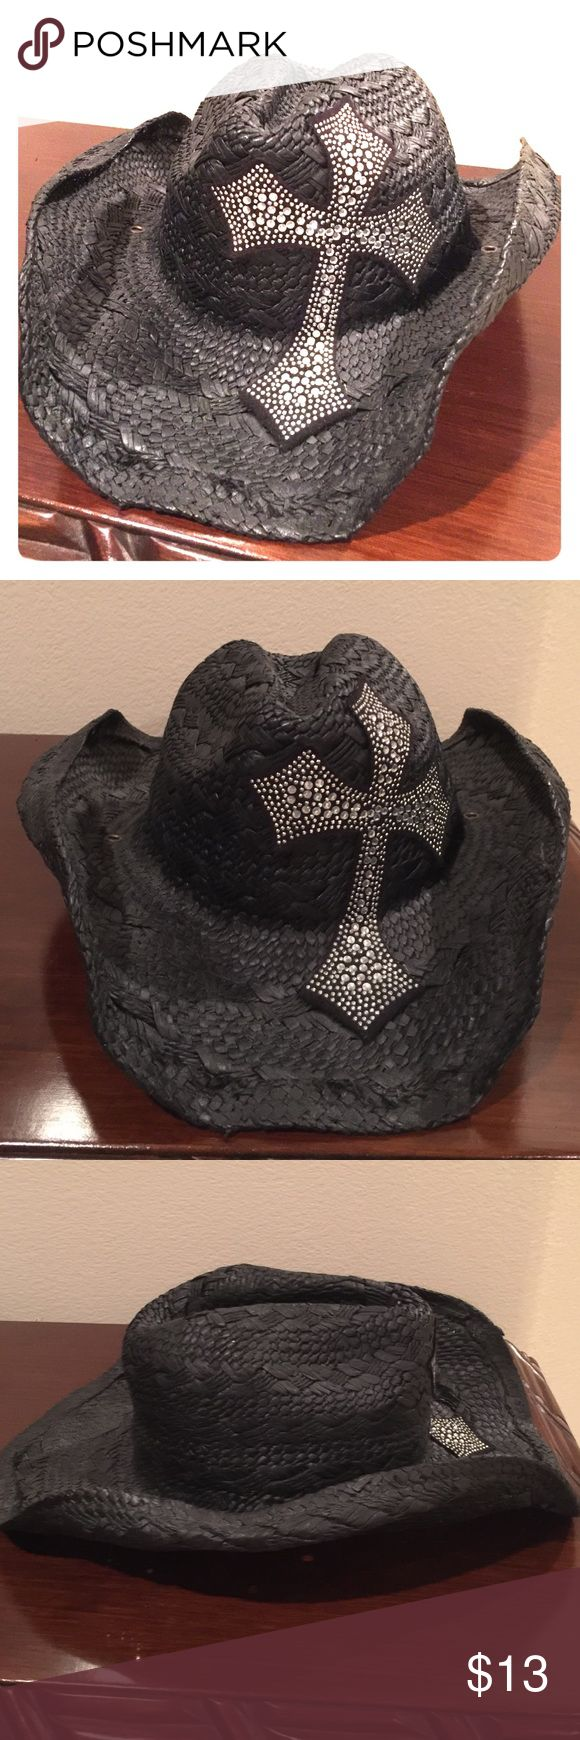 Black rhinestone cowboy hat Black flexible cowboy hat. One sized. Rhinestone cross. Pre-worn. :) Accessories Hats